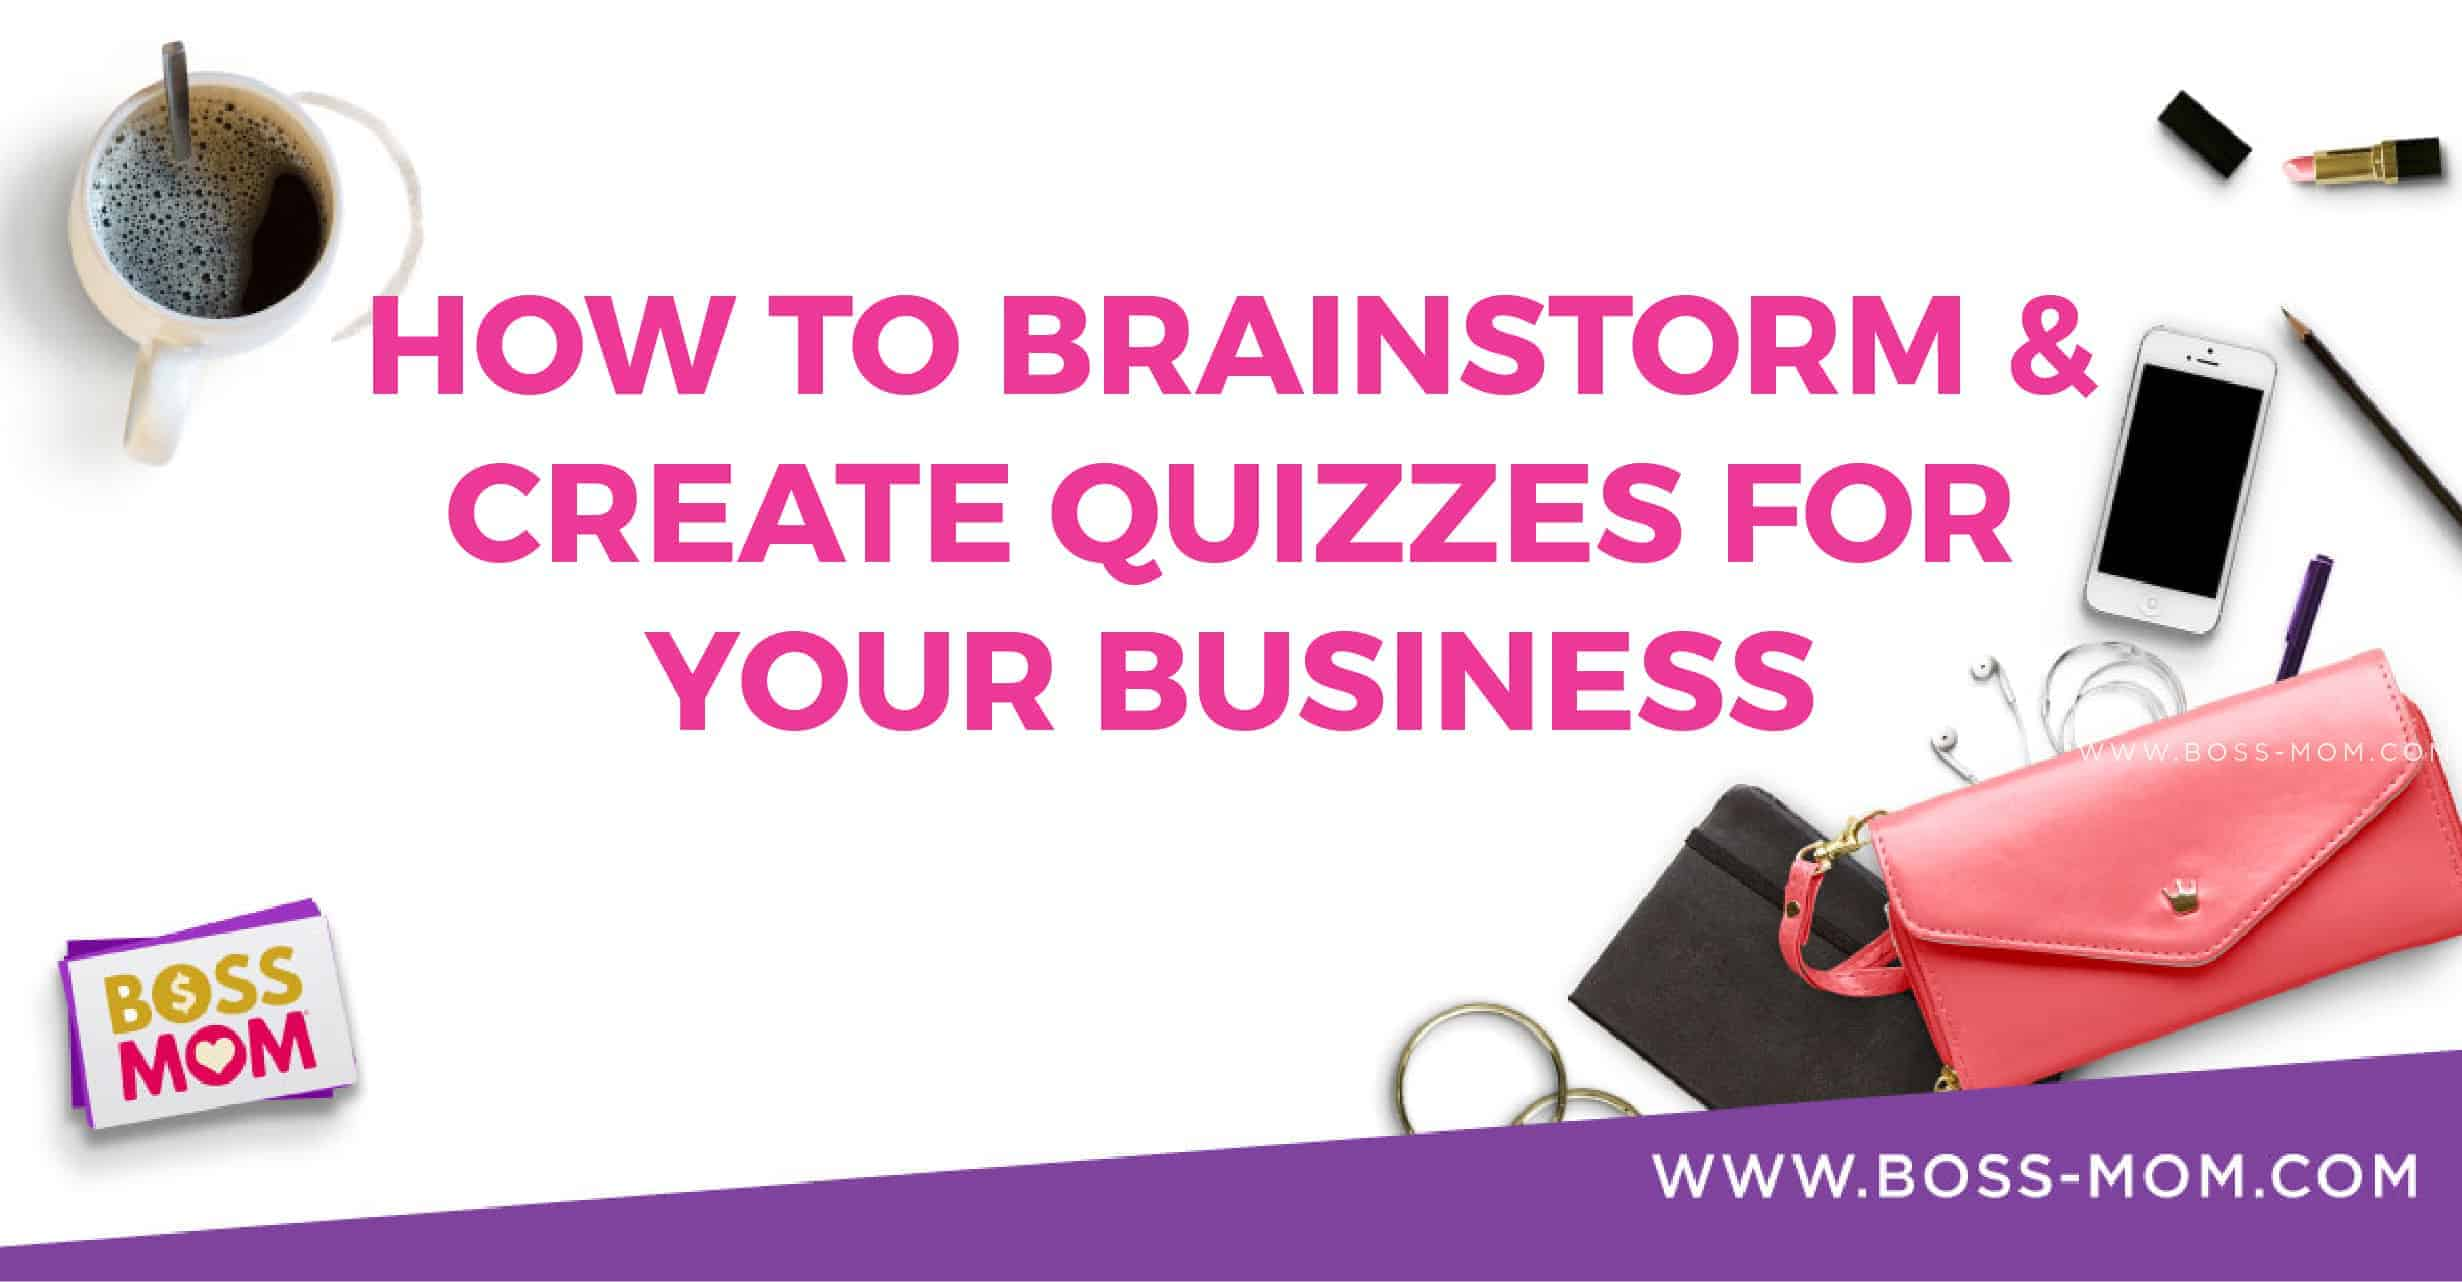 Episode 181: How to Brainstorm & Create Quizzes for Your Business